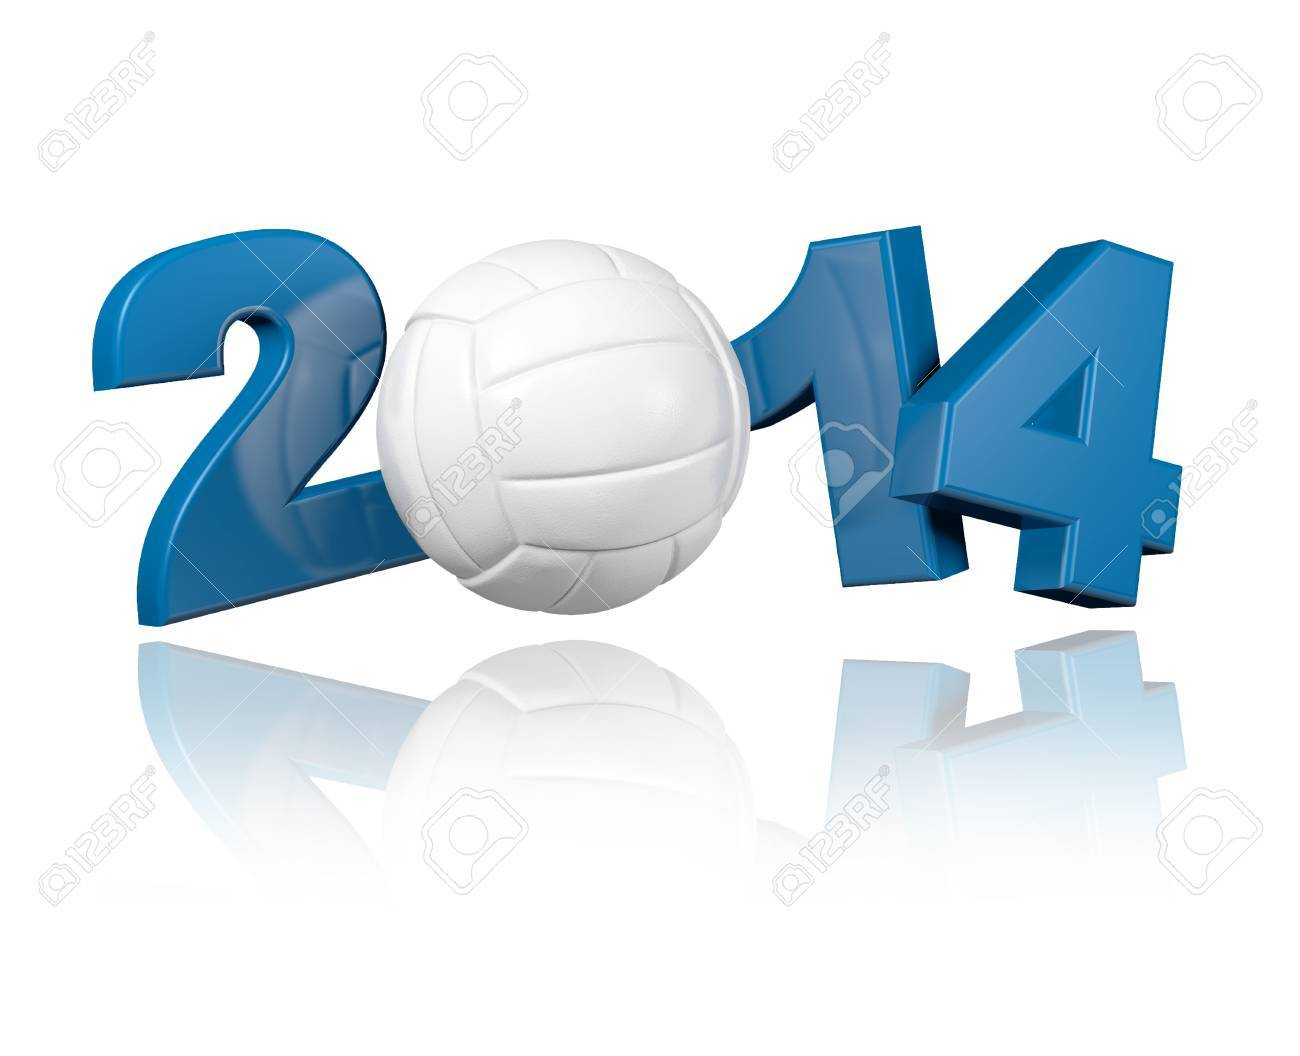 Volleyball 2014 design with a White Background - 18406598